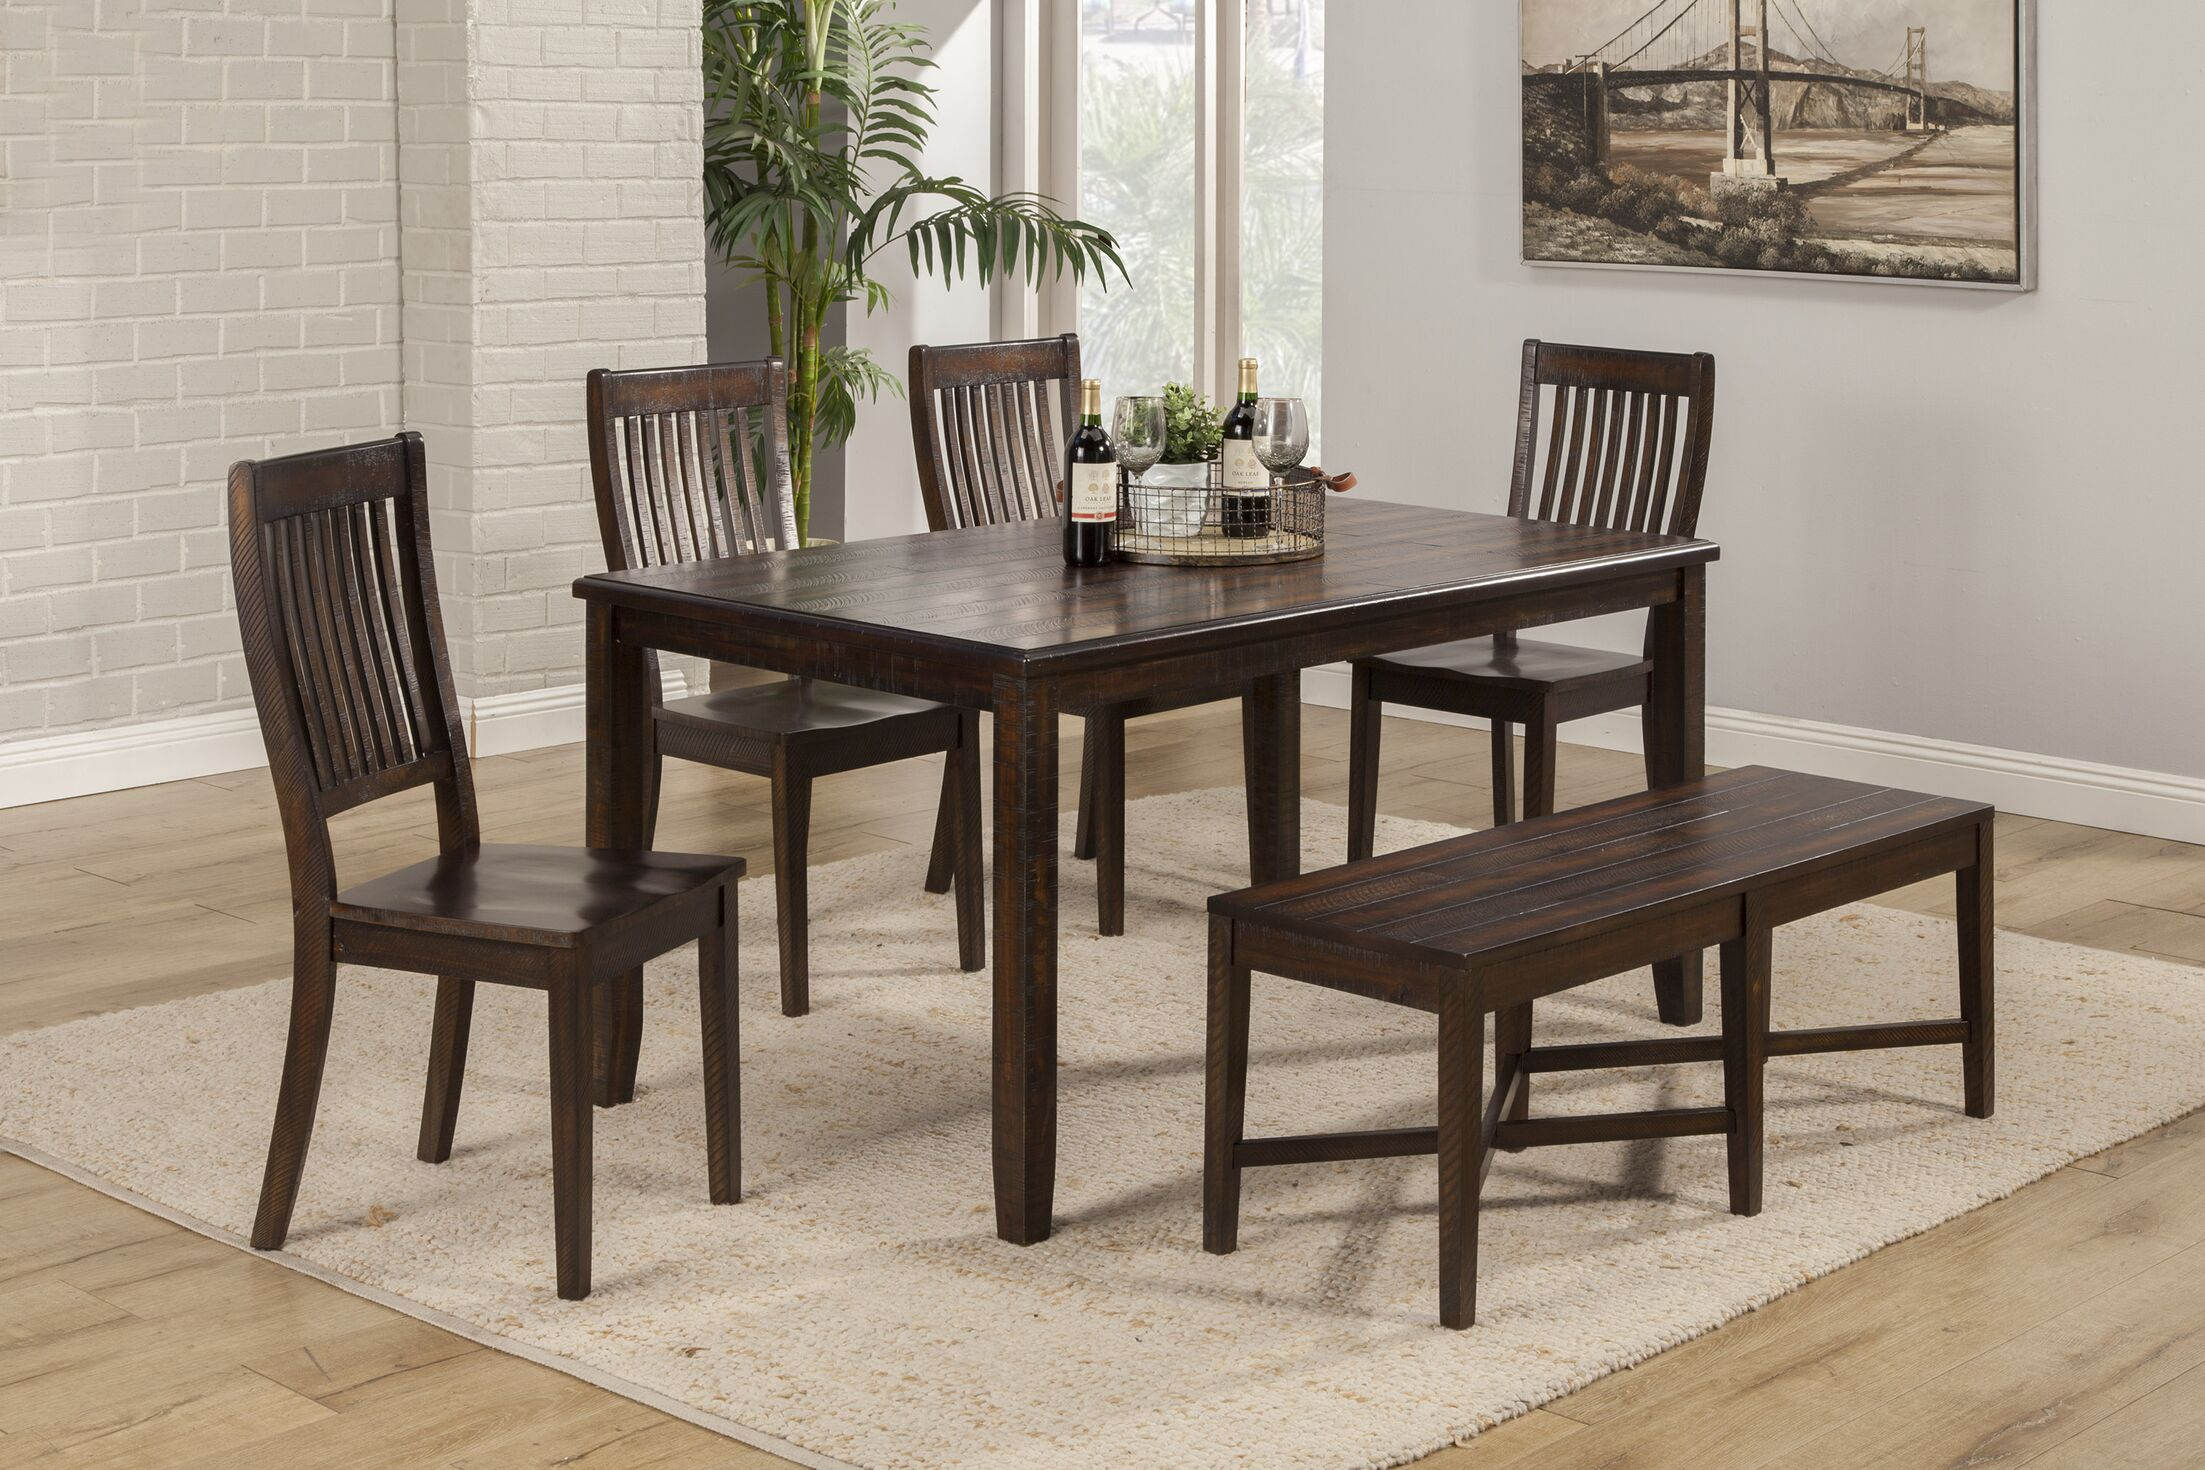 Alyshia 6 Piece Dining Set